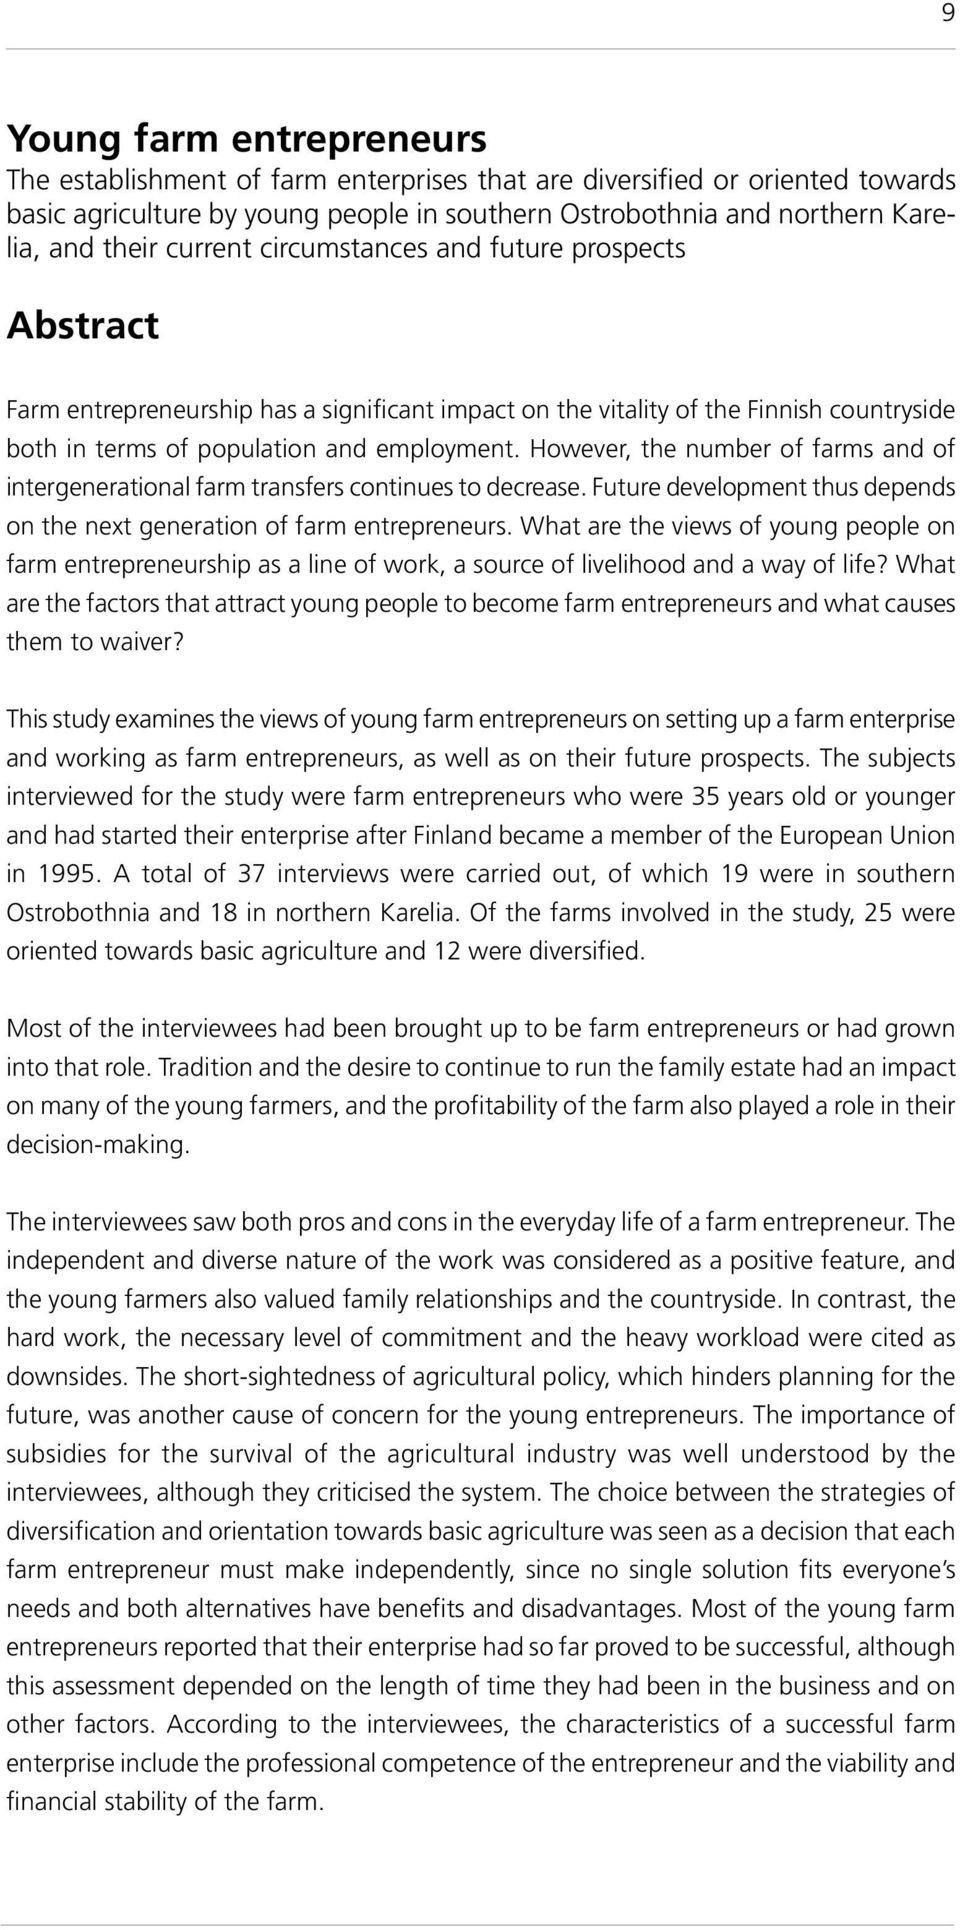 However, the number of farms and of intergenerational farm transfers continues to decrease. Future development thus depends on the next generation of farm entrepreneurs.